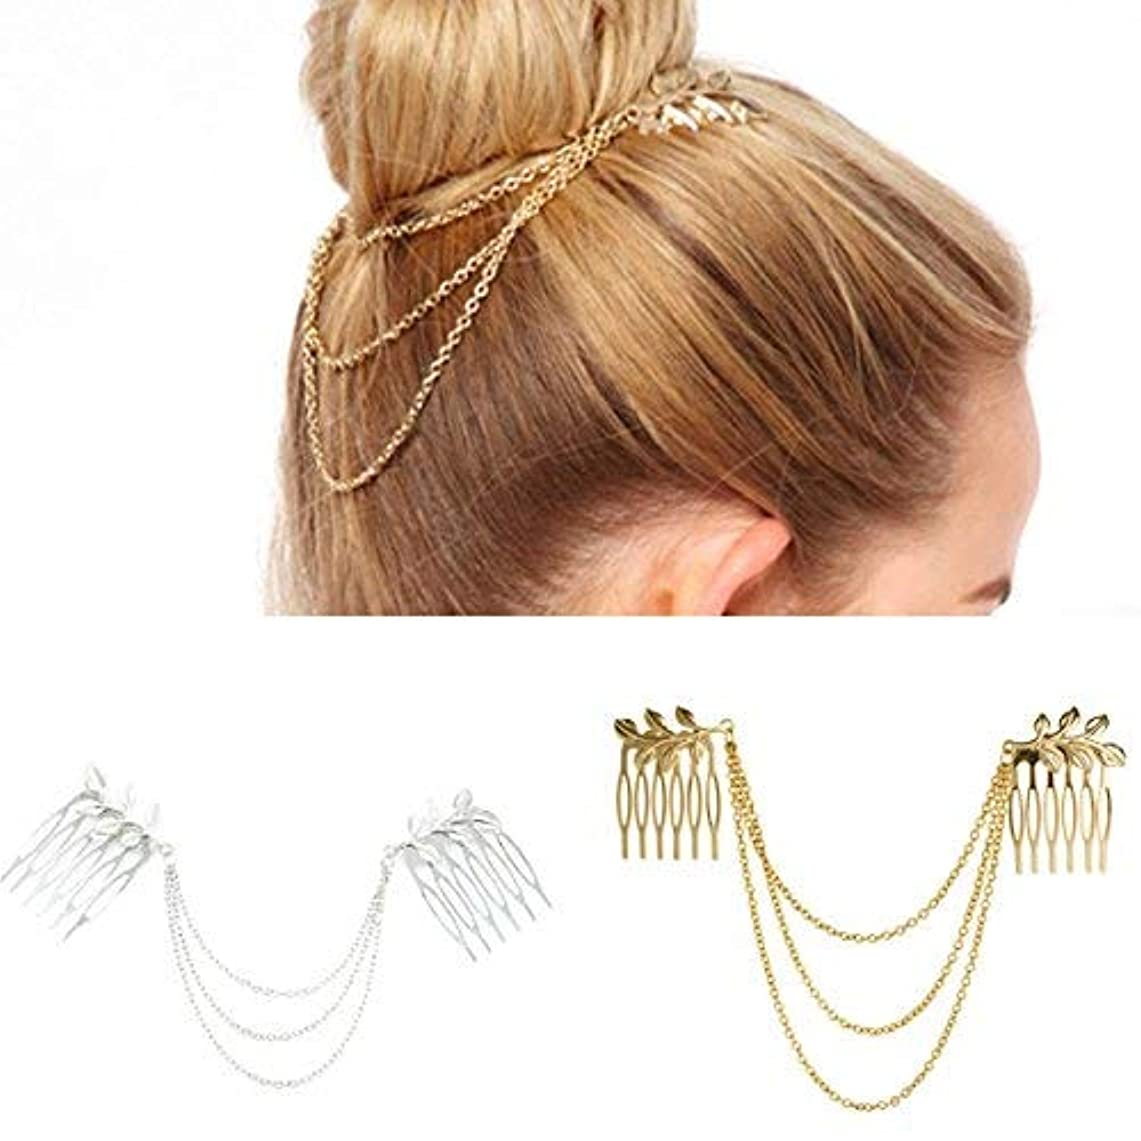 戻るかまど刈り取るNumblartd 2 Pcs Women BOHO Chic Metal Leaf Chain Tassel Headband Hair Comb - Fashion Fringe Hair Clip Pins Hairpin...